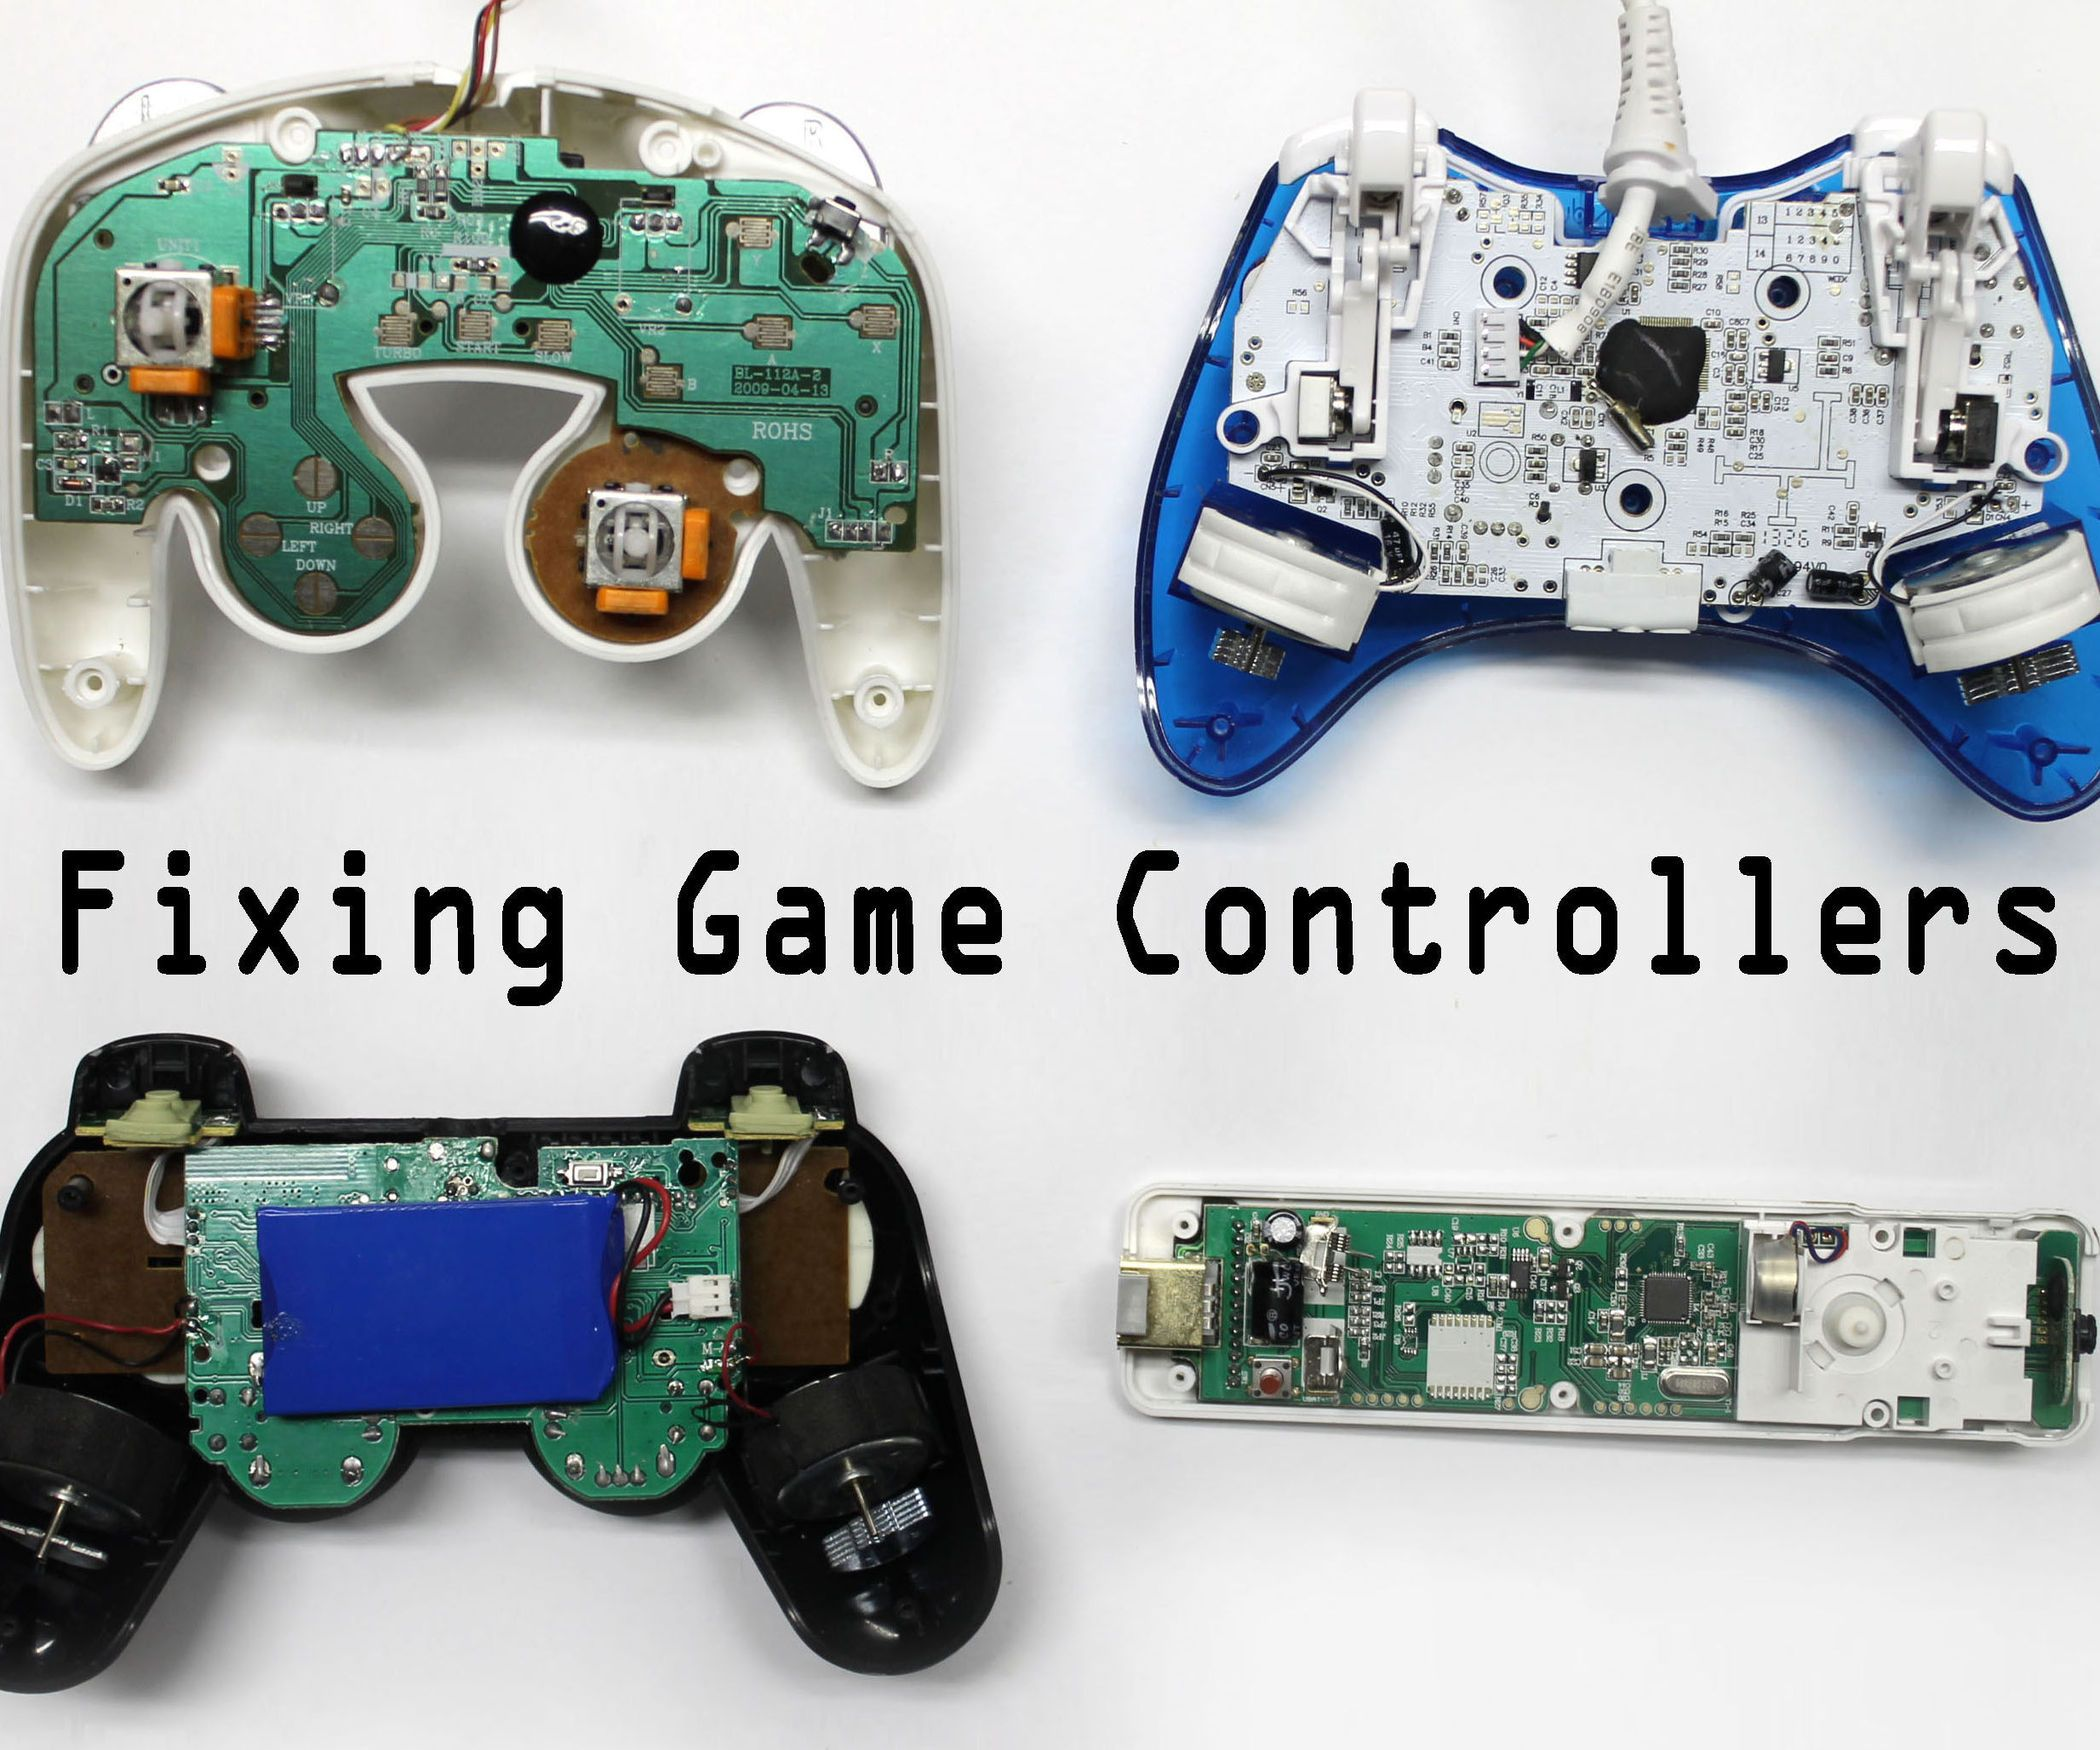 Fix Any Video Game Controller Game Controller Video Game Controller Gamecube Controller